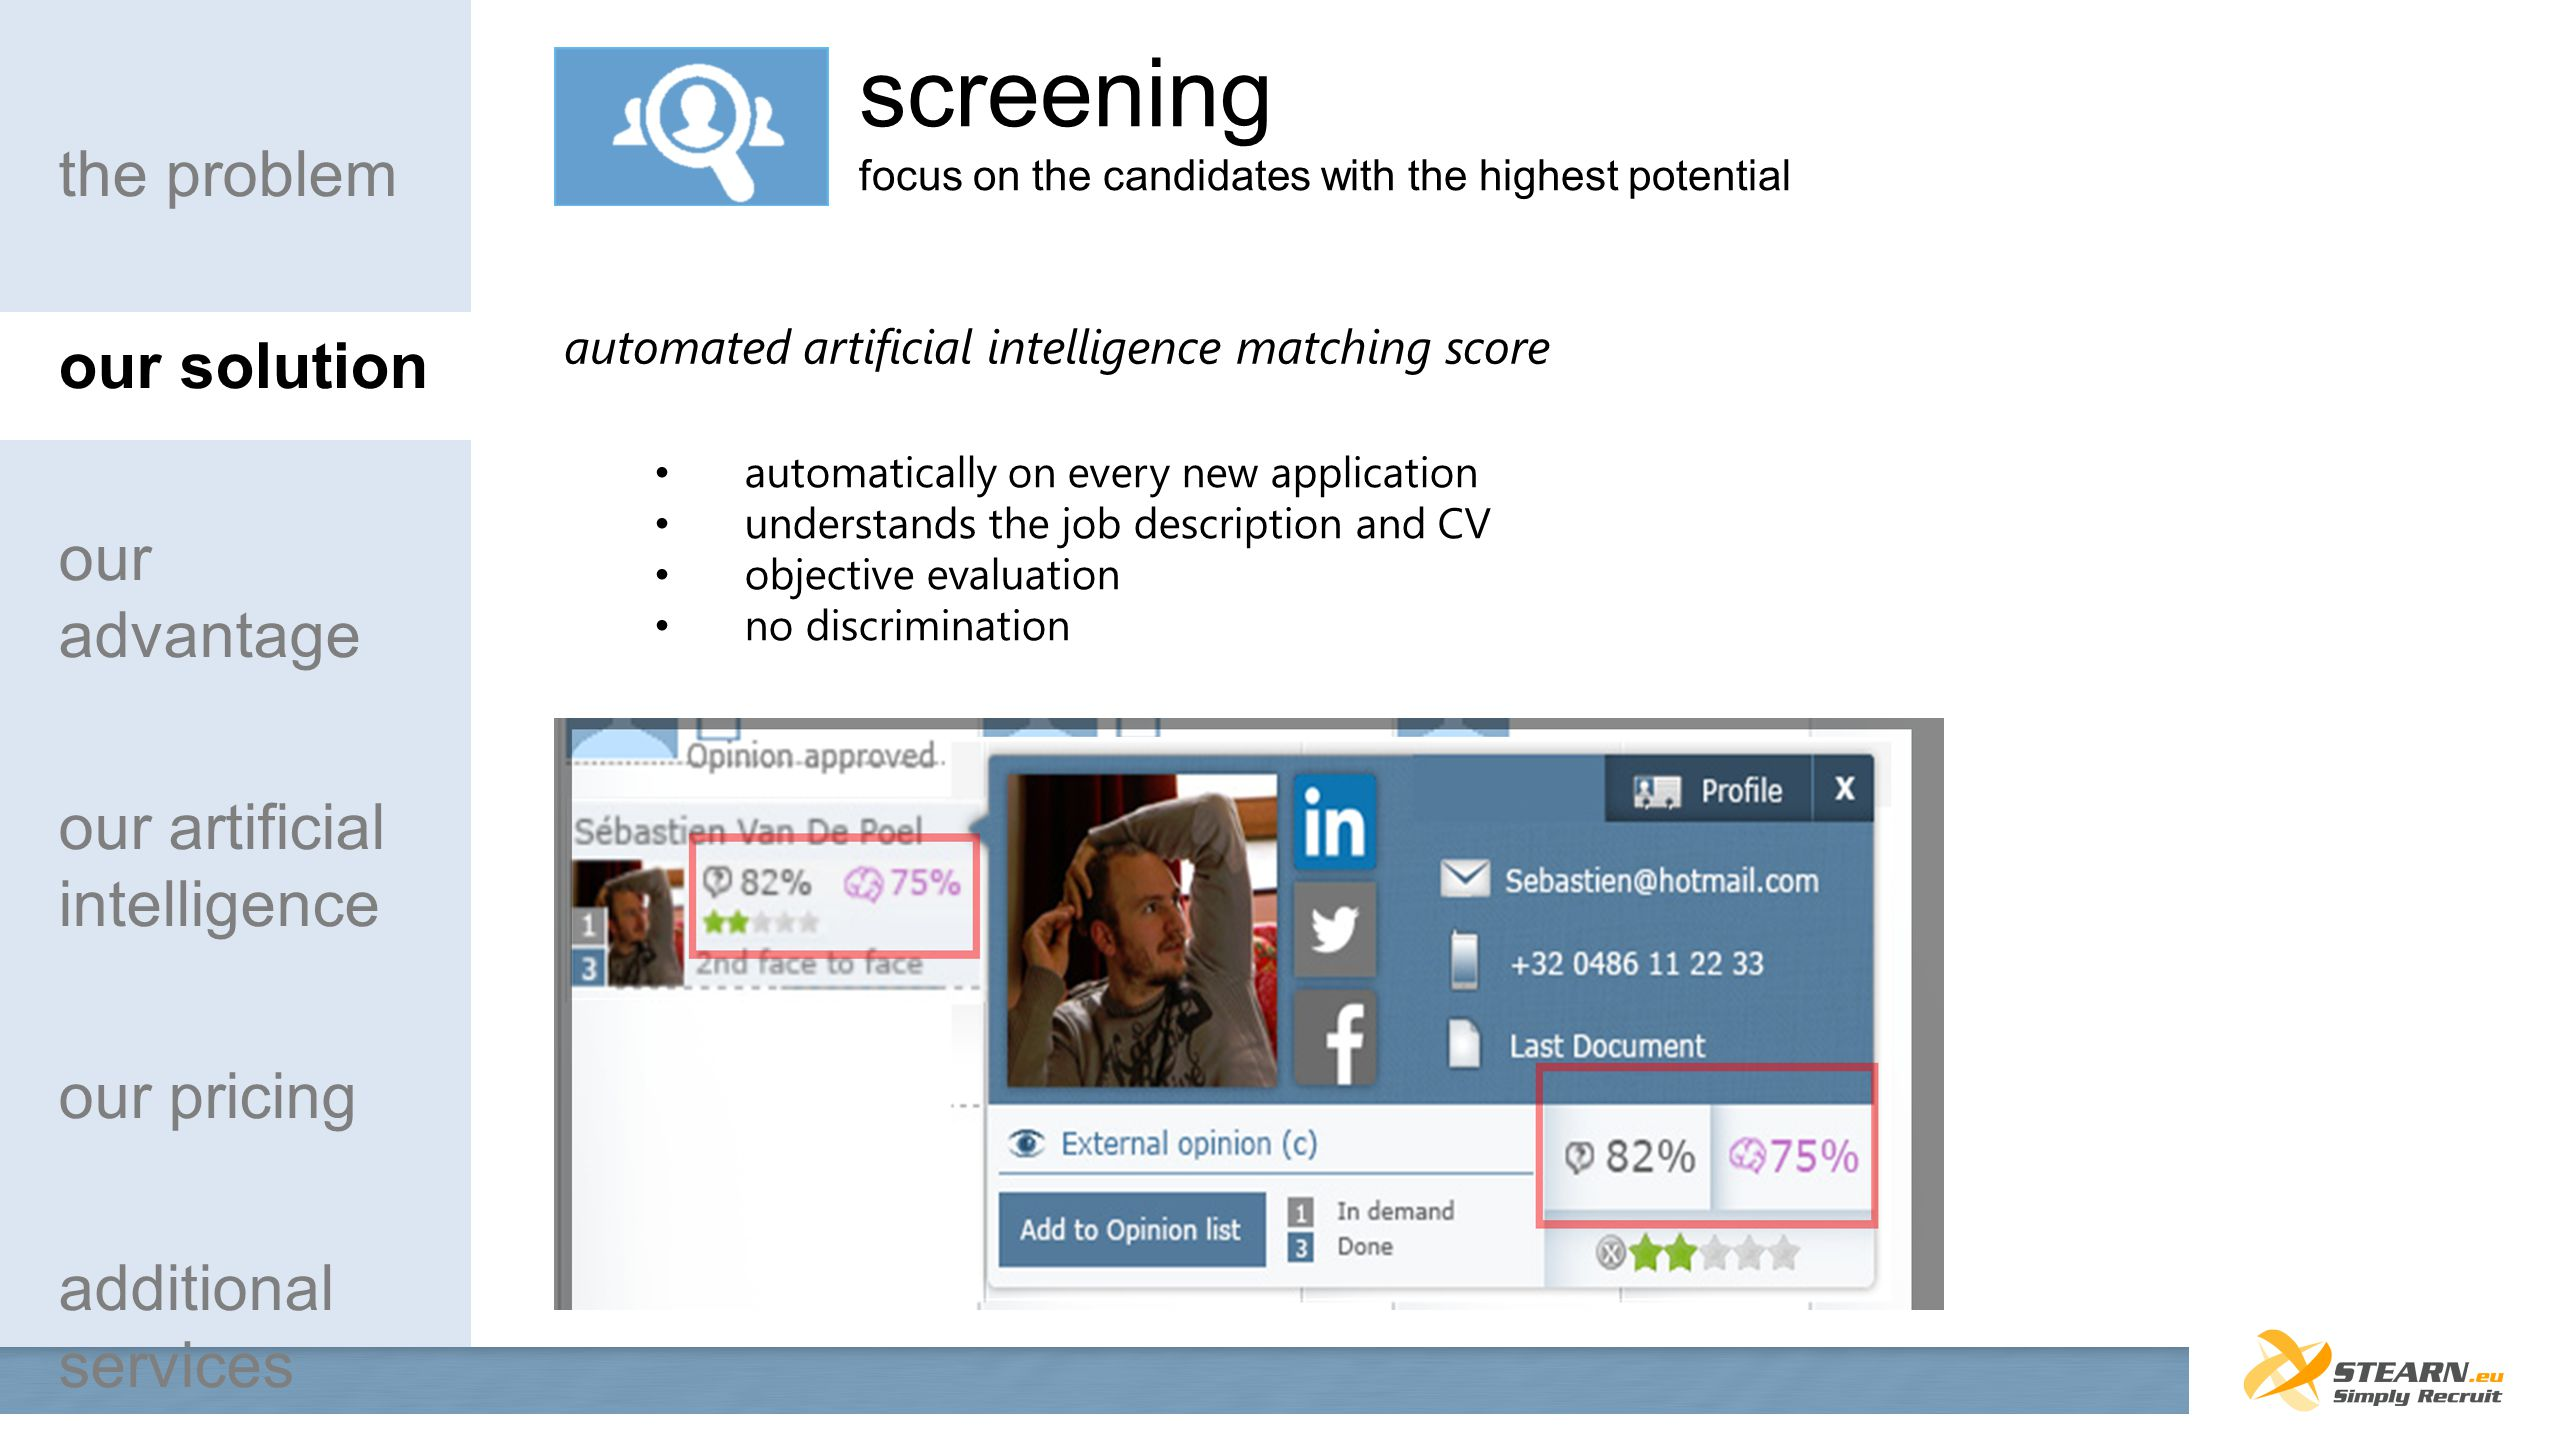 automated artificial intelligence matching score automatically on every new application understands the job description and CV objective evaluation no discrimination the problem our solution our advantage our artificial intelligence our pricing additional services screening focus on the candidates with the highest potential